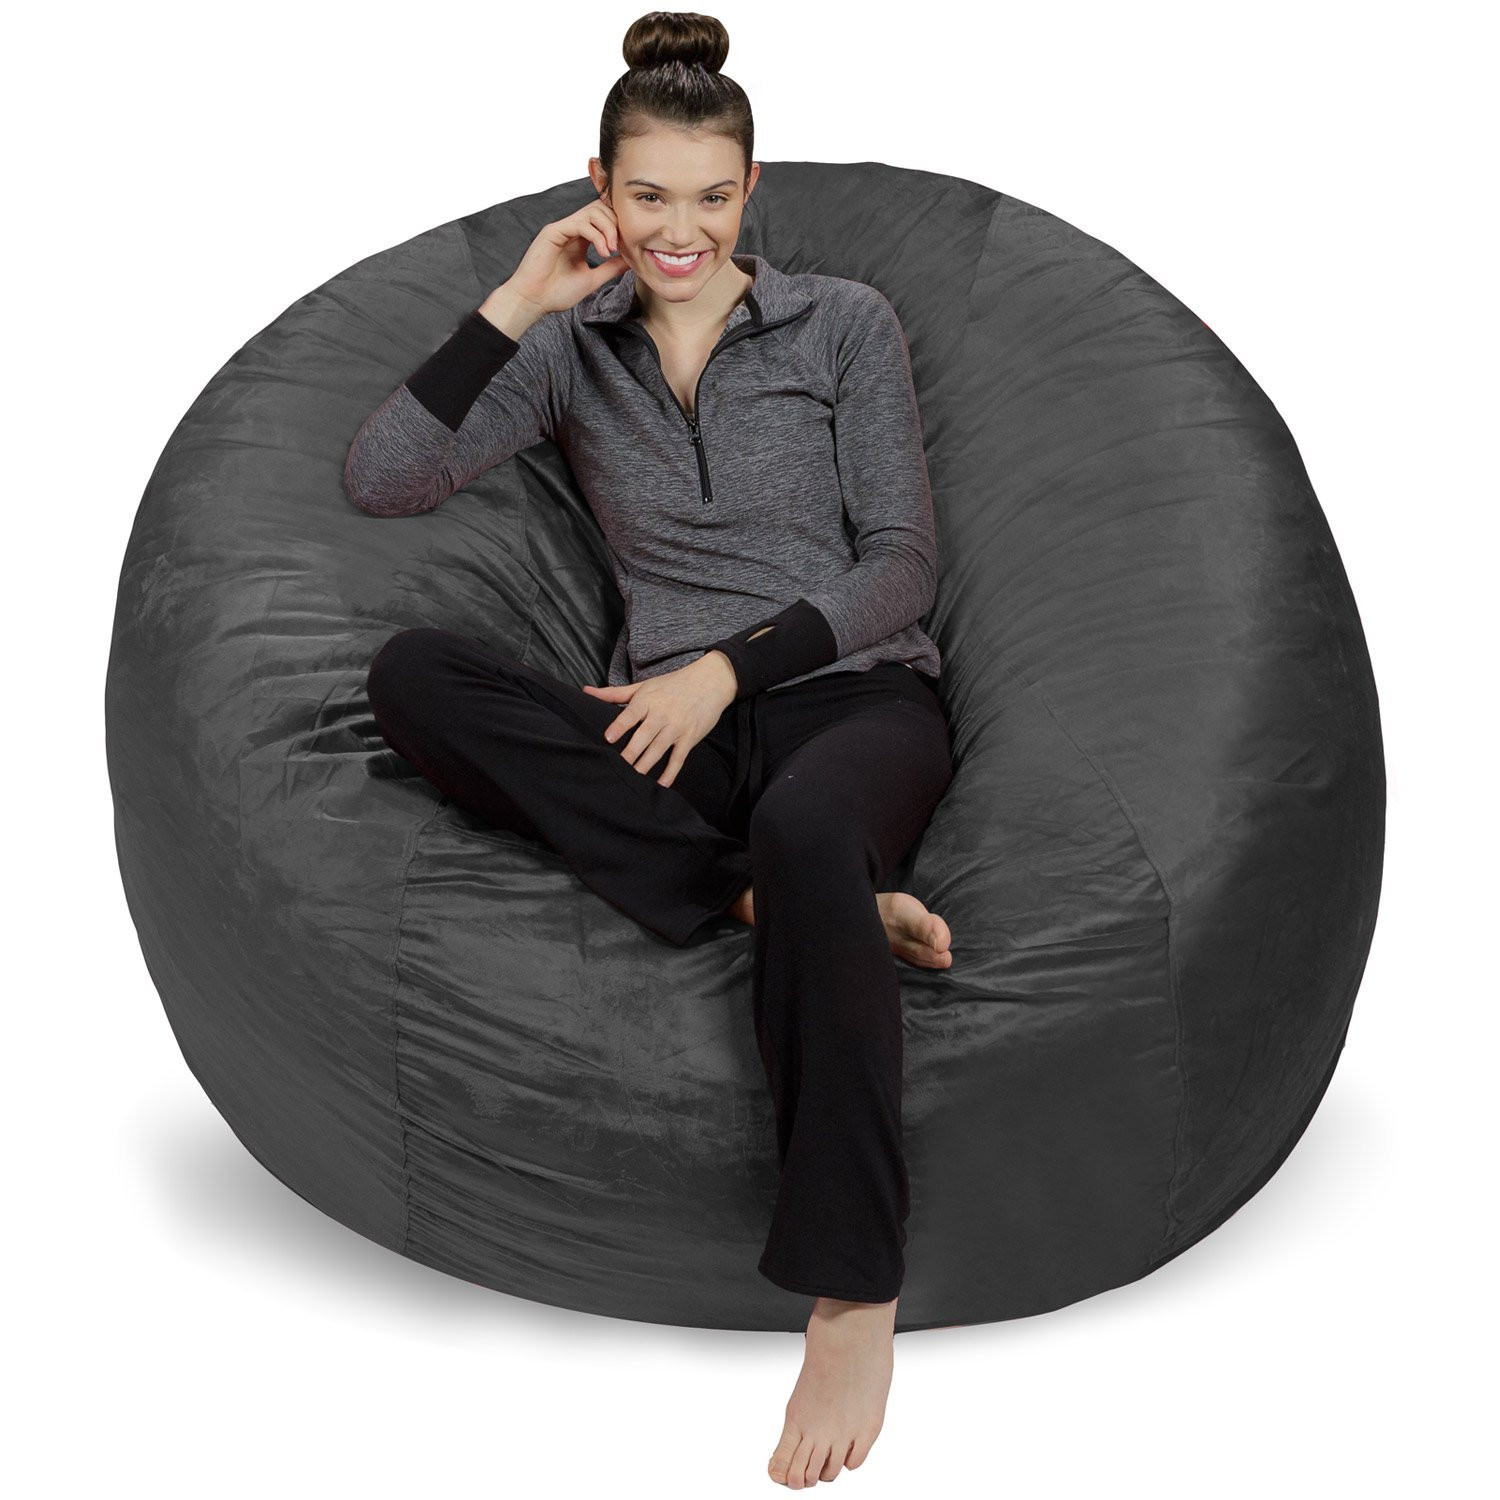 Sofa Sack – Plush Ultra Soft Bean Bags Chairs for Kids, Teens, Adults – Memory Foam Beanless Bag Chair with Microsuede Cover – Foam Filled Furniture for Dorm Room – Charcoal 6